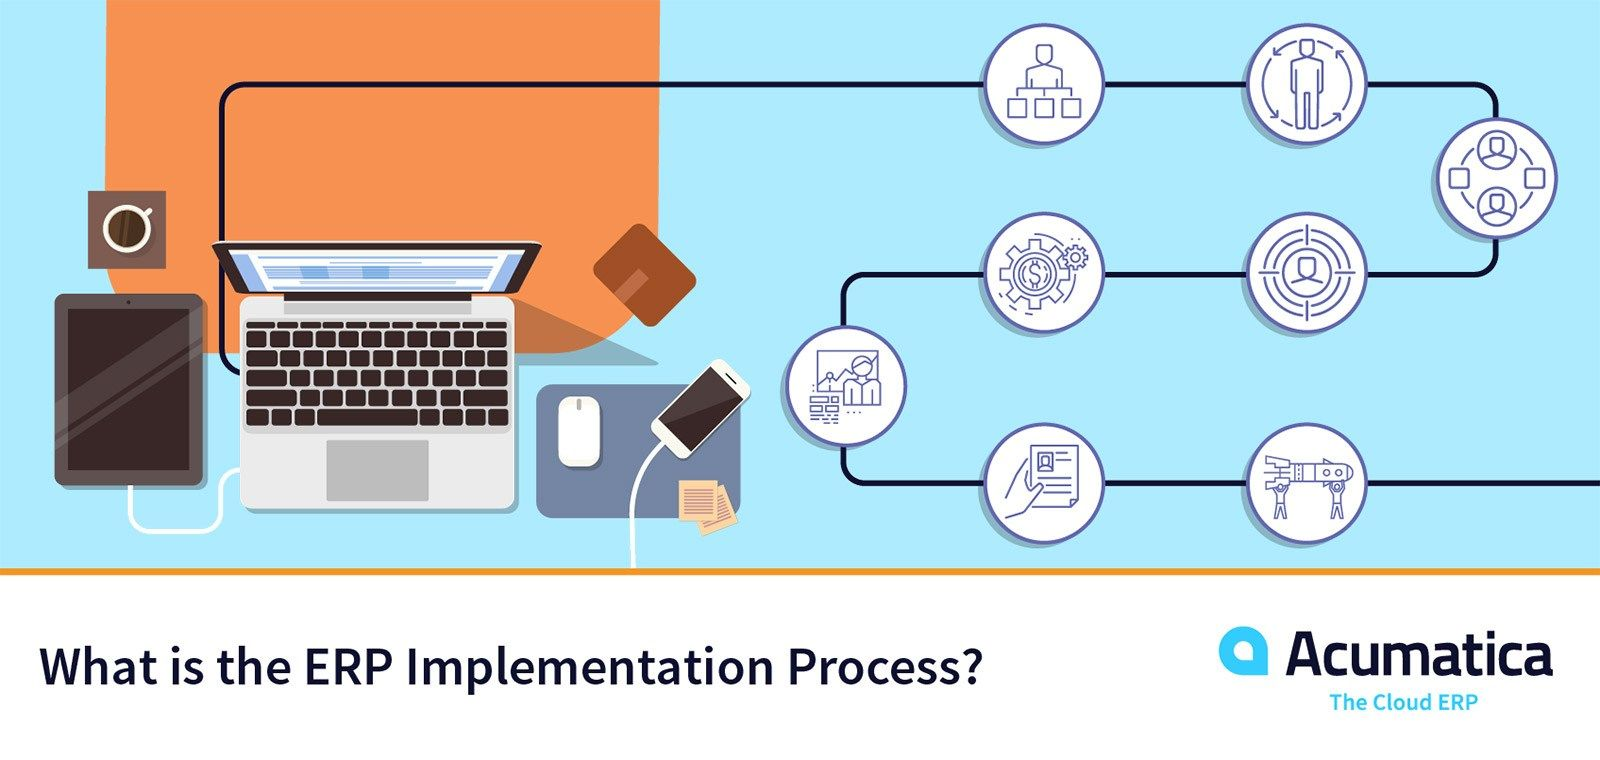 What is the ERP Implementation Process?